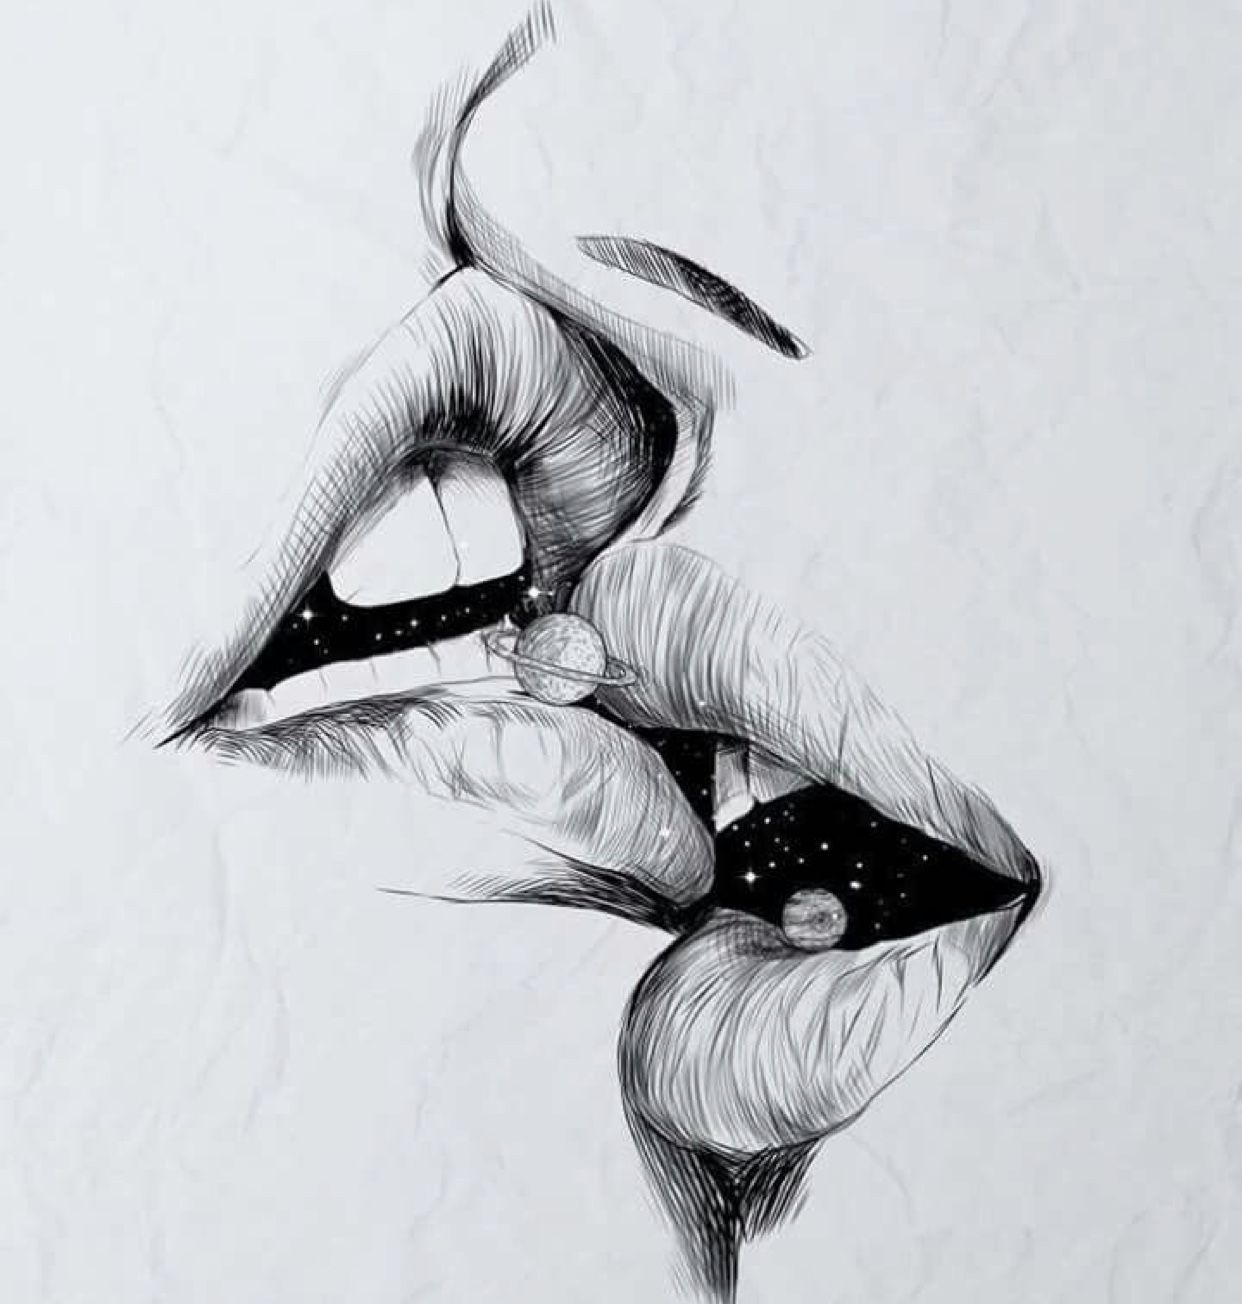 drawing ideas images - 750×965